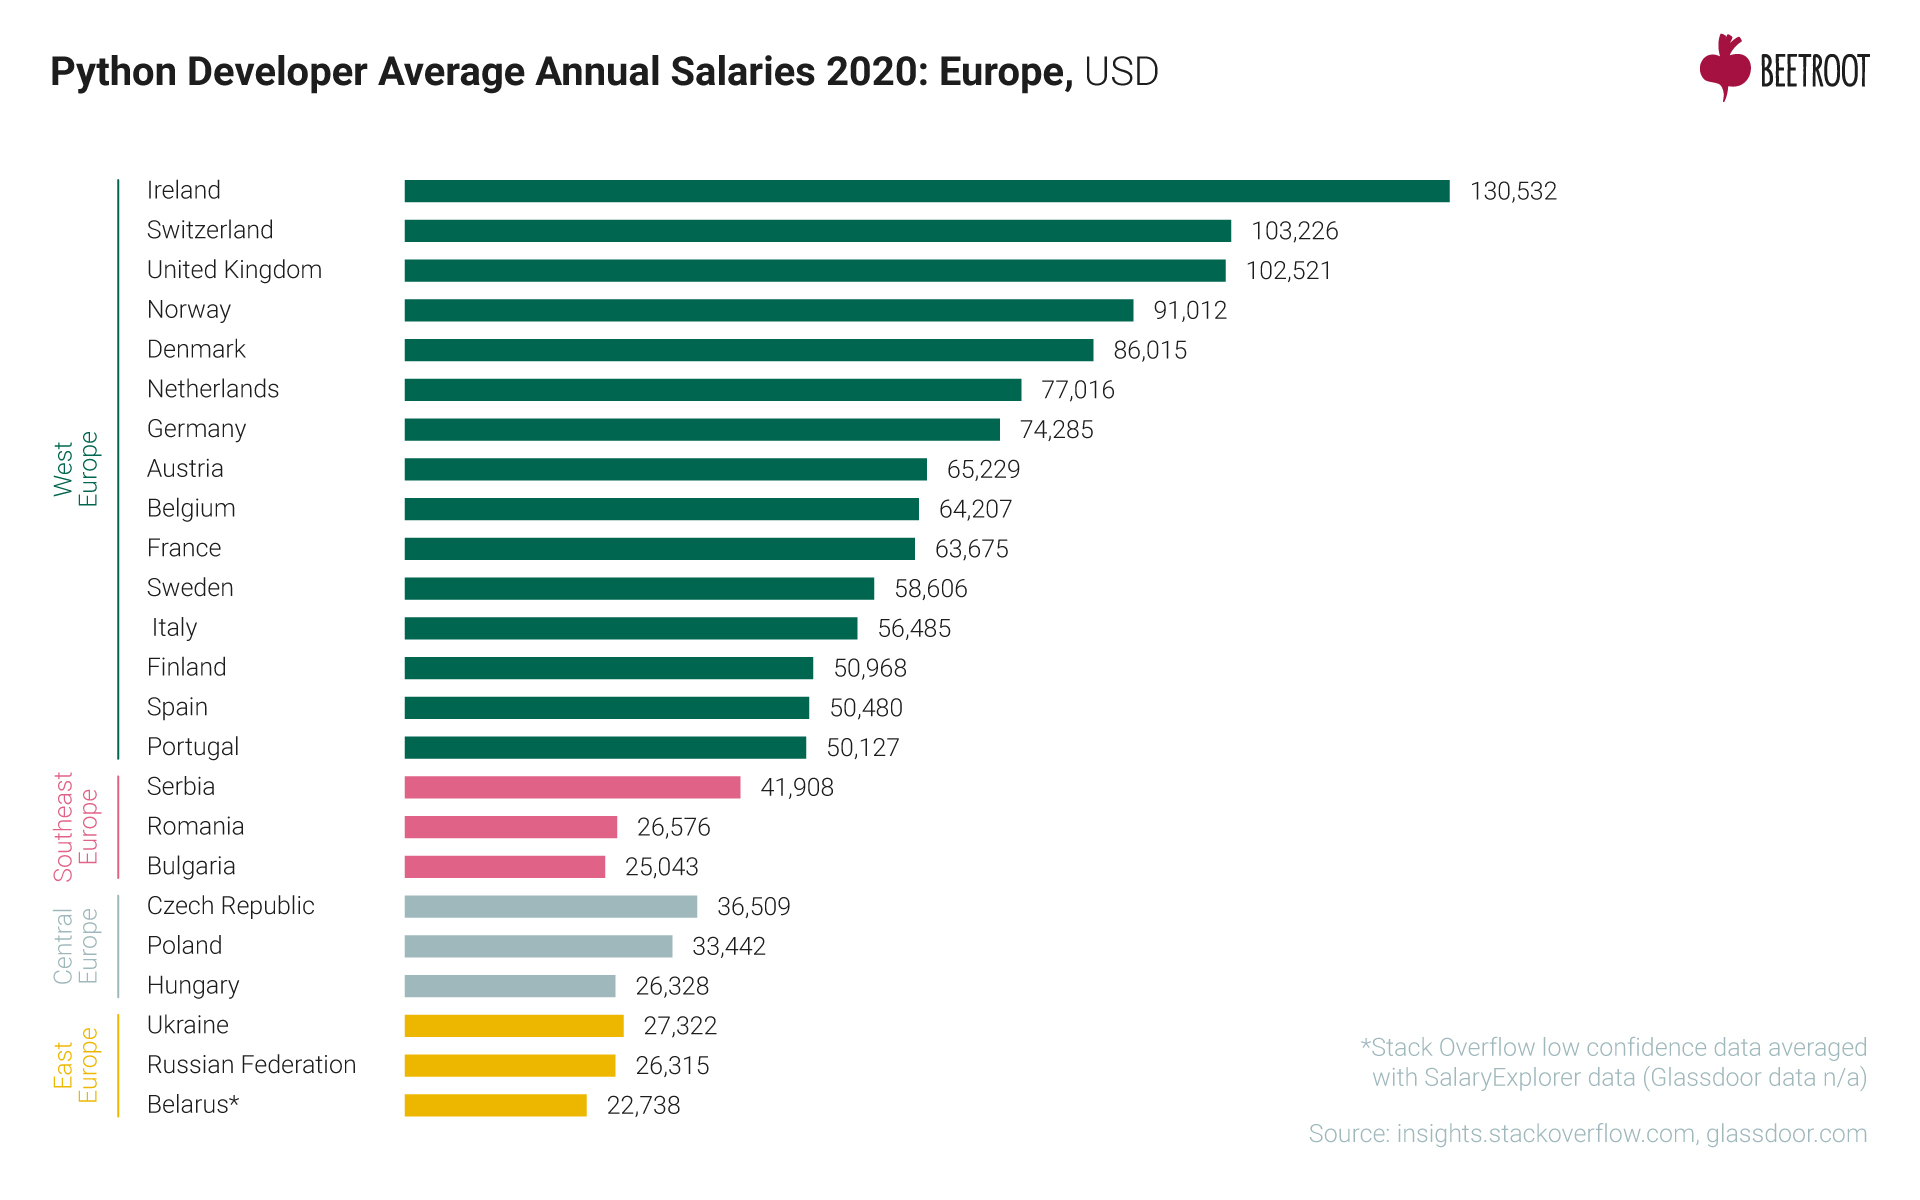 Python developer average annual salaries 2020: Europe